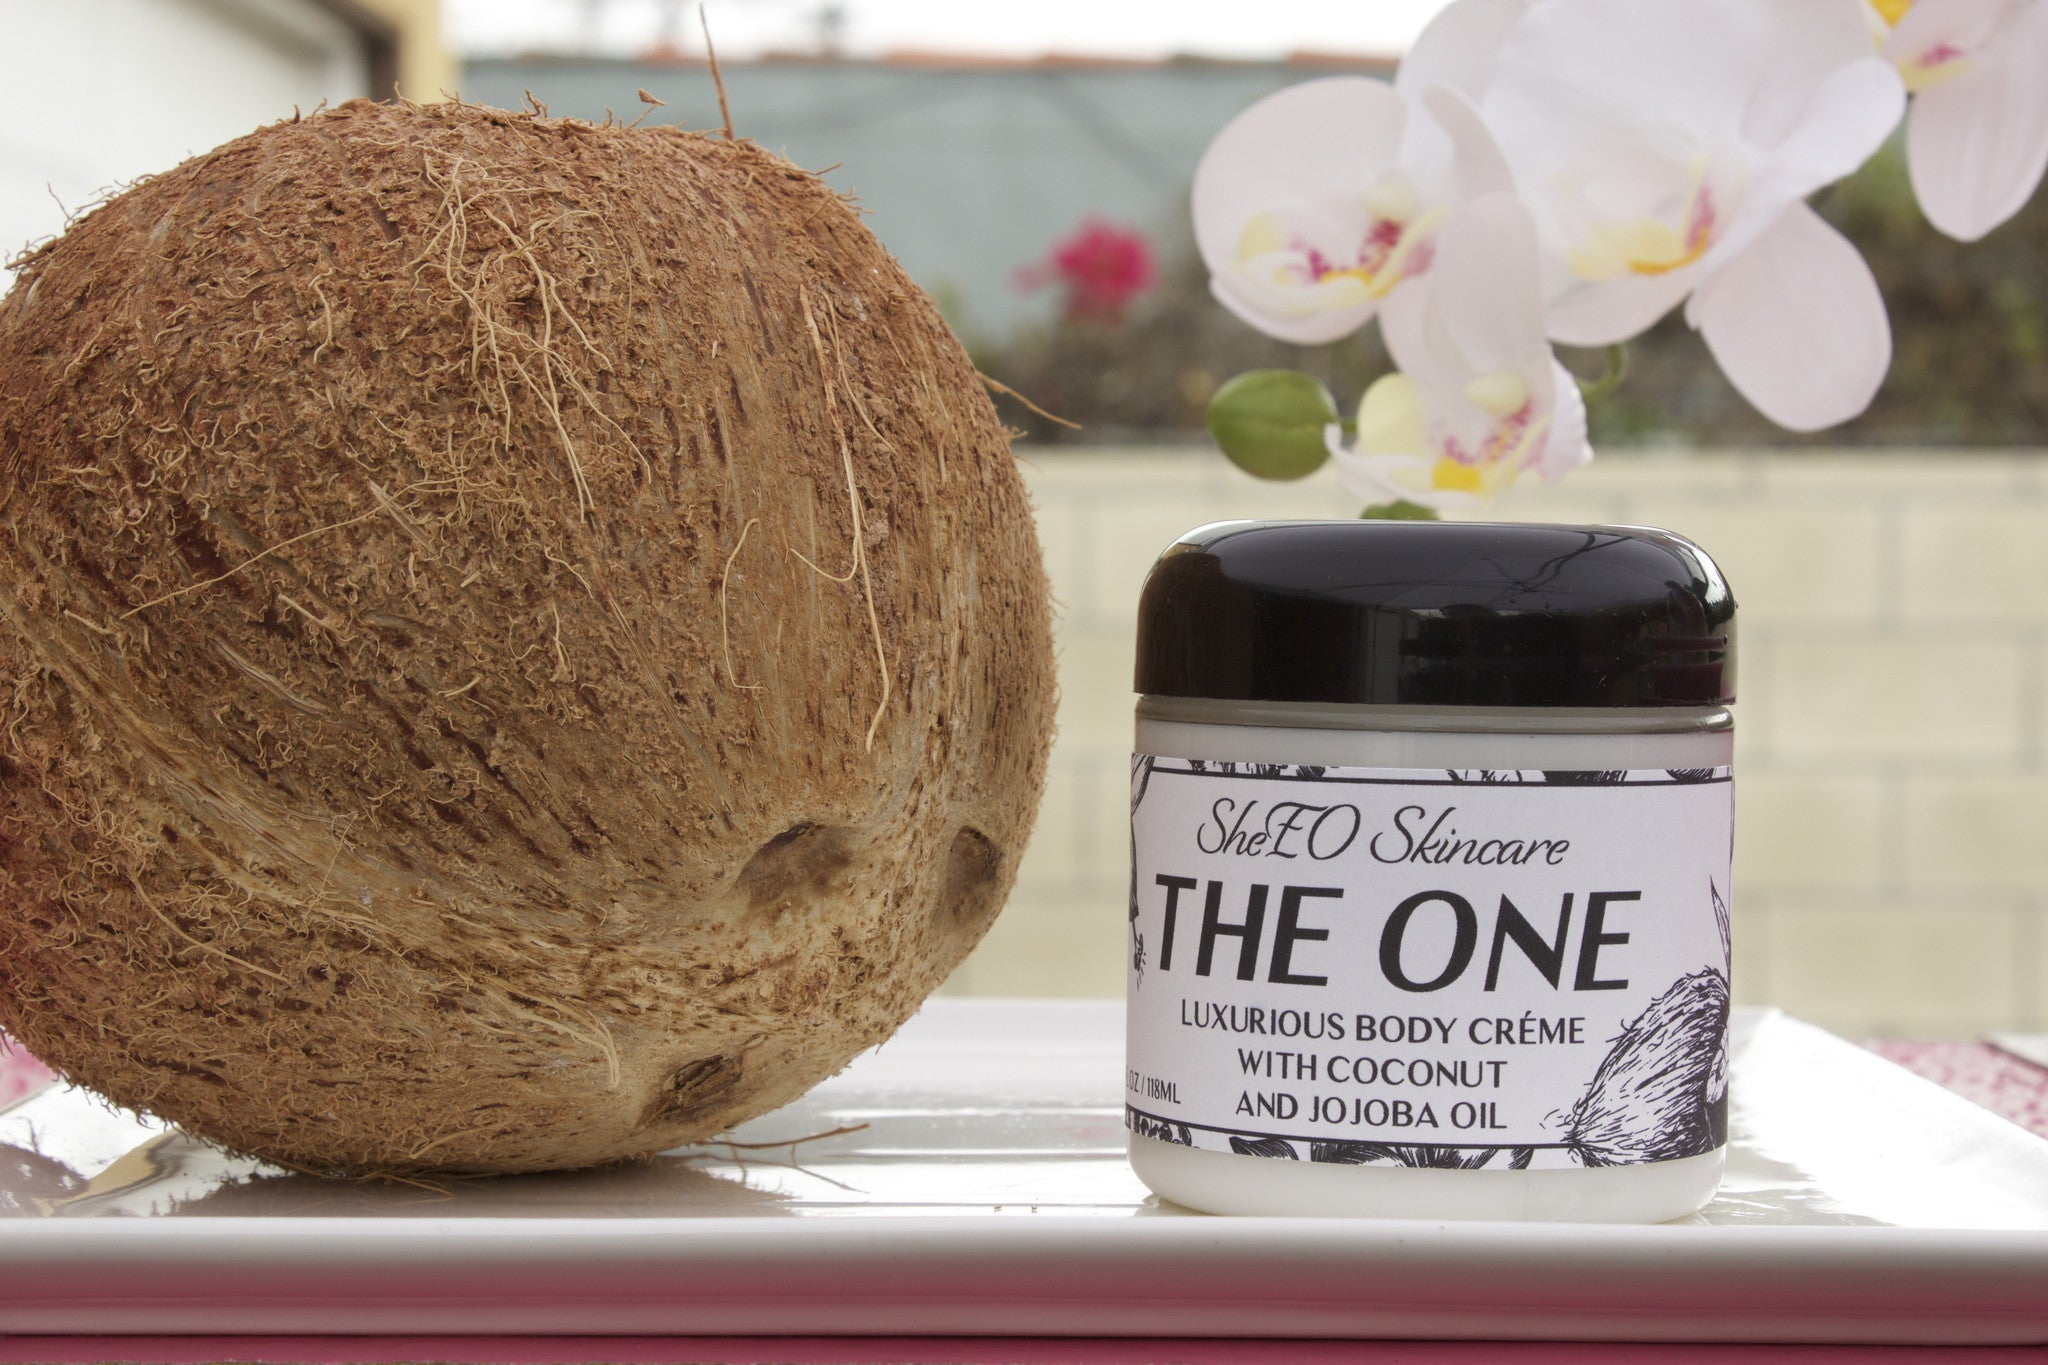 The One~ Luxurious body creme V.1